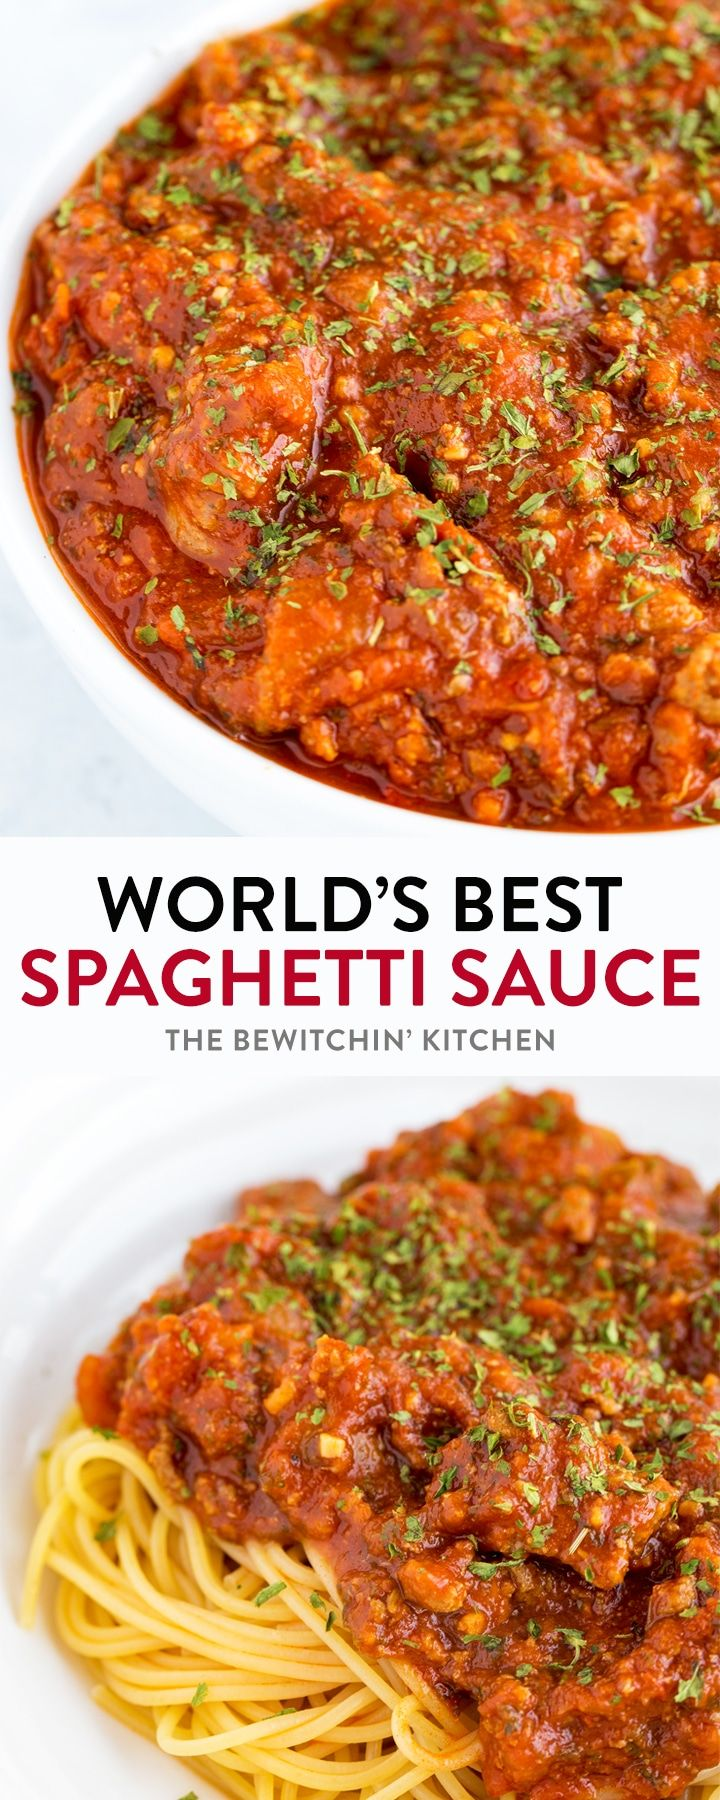 This homemade spaghetti sauce recipe is so darn good! It's easy, tasty, and very well could be the world's best spaghetti sauce ever! It makes a lot too! Enough to feed a crowd. Easy enough to throw in a slow cooker or Instant Pot too! #spaghettisauce #spaghettisaucerecipe #easyspaghettisauce #bestspaghettisauce